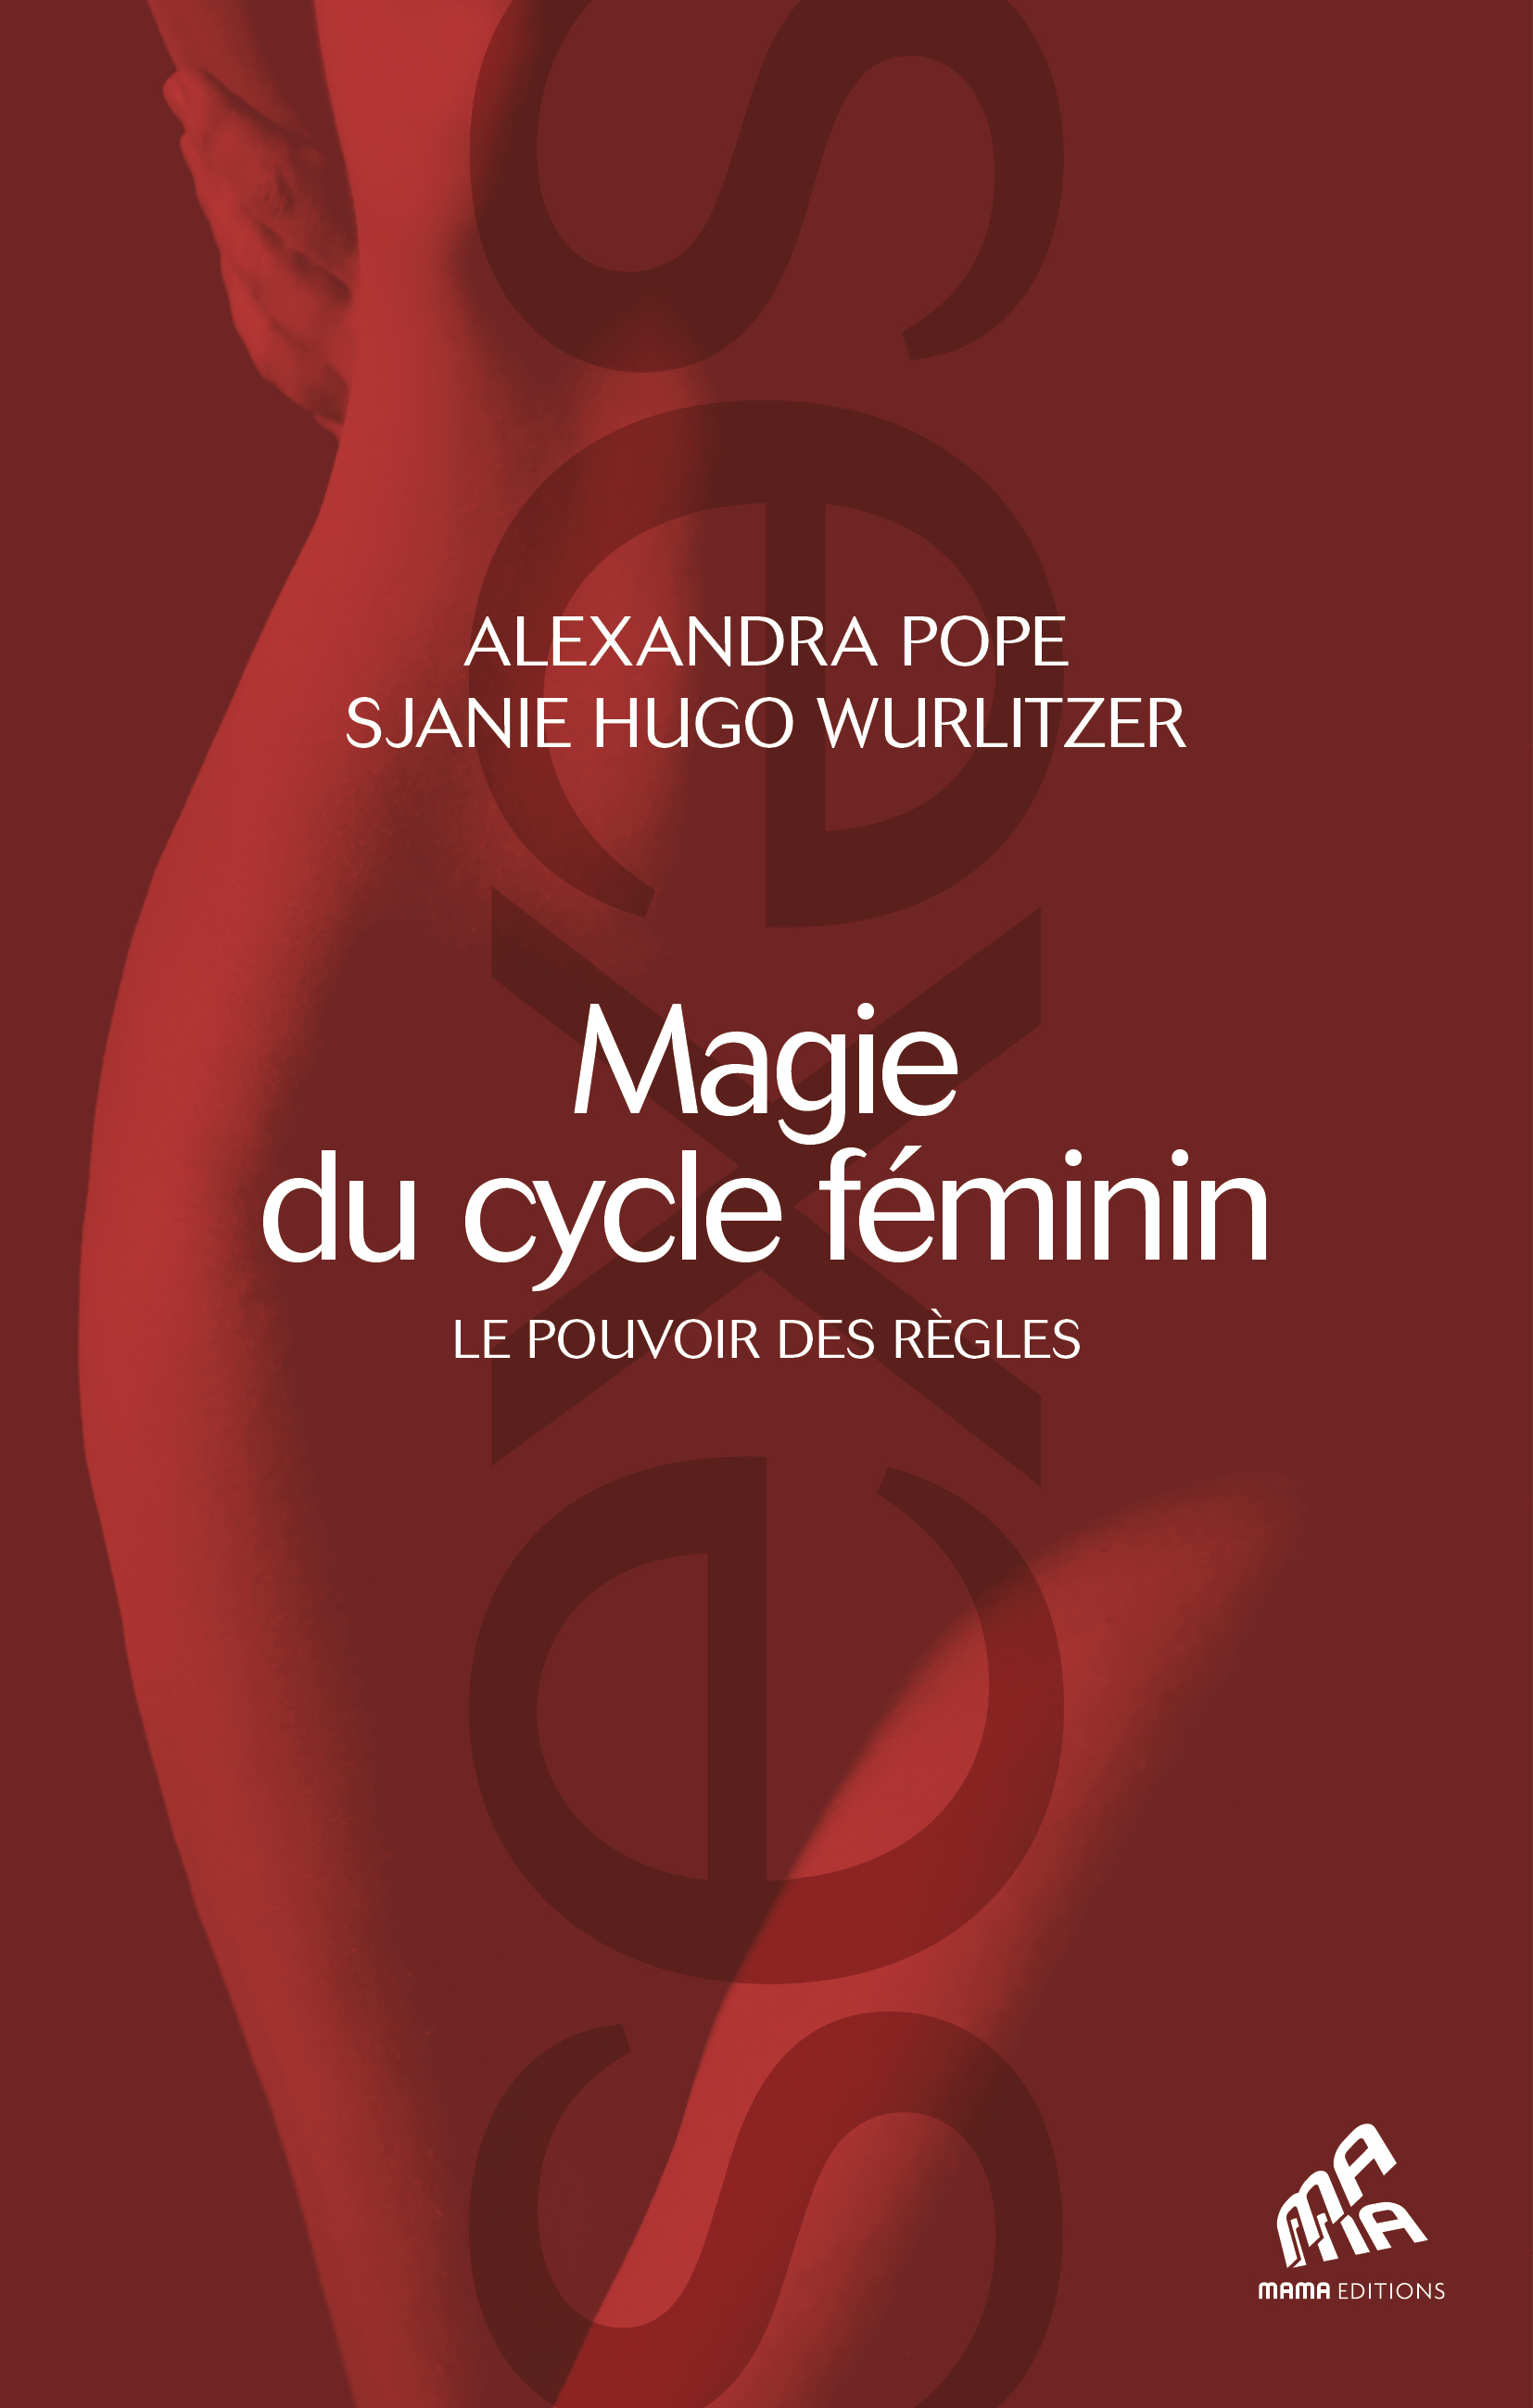 MAGIE DU CYCLE FEMININ